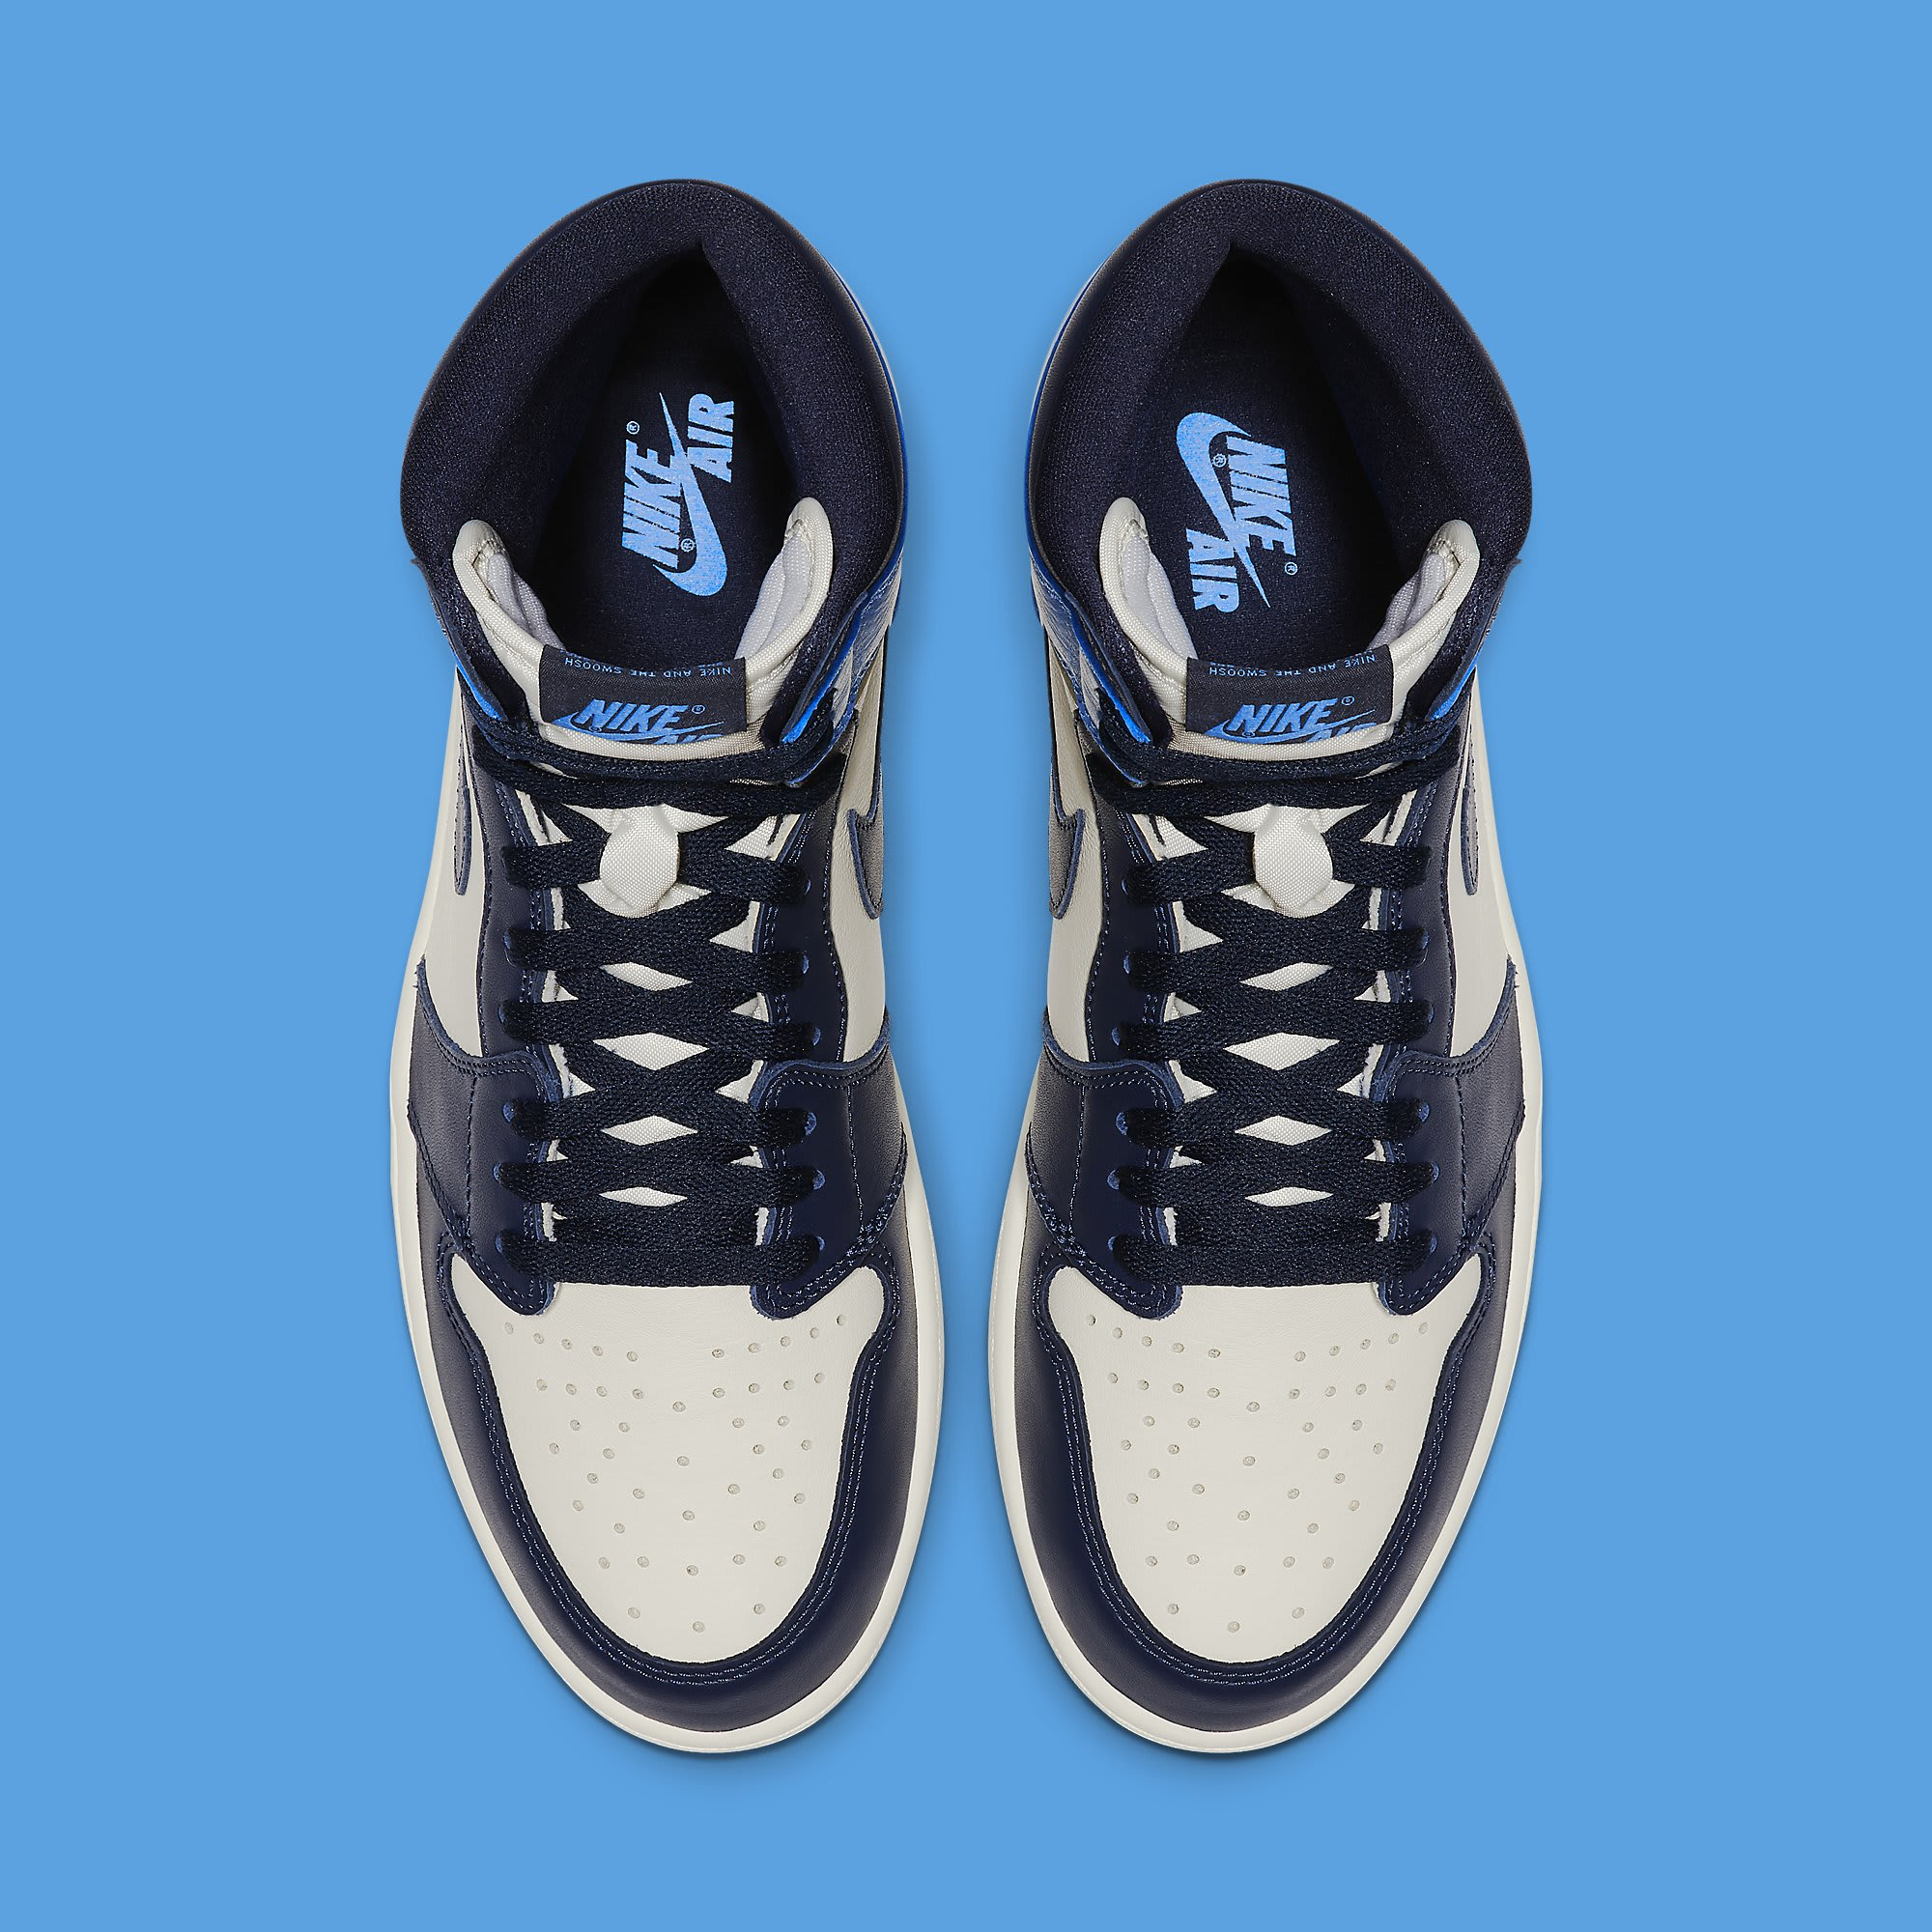 Air Jordan 1 'Sail/Obsidian-University Blue' 555088-140 (Top)